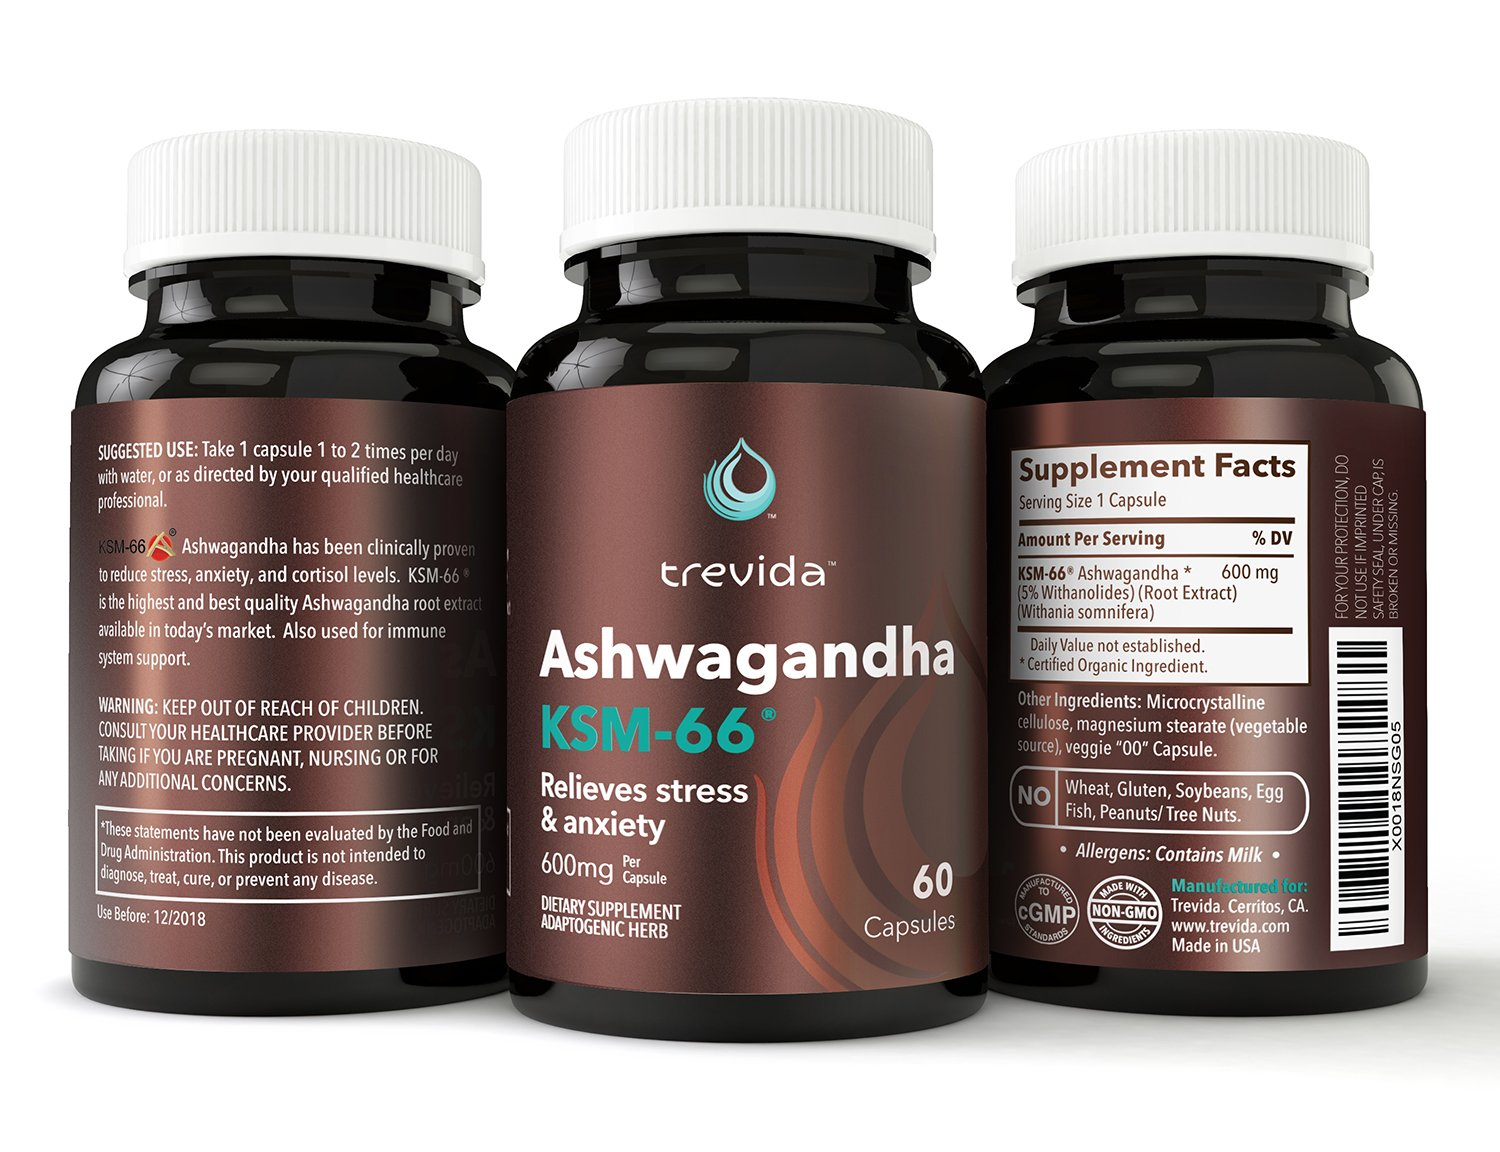 Trevida Organic Ashwagandha Extract KSM-66 - Formulated to Relieve Stress &  Anxiety - Highest Potency